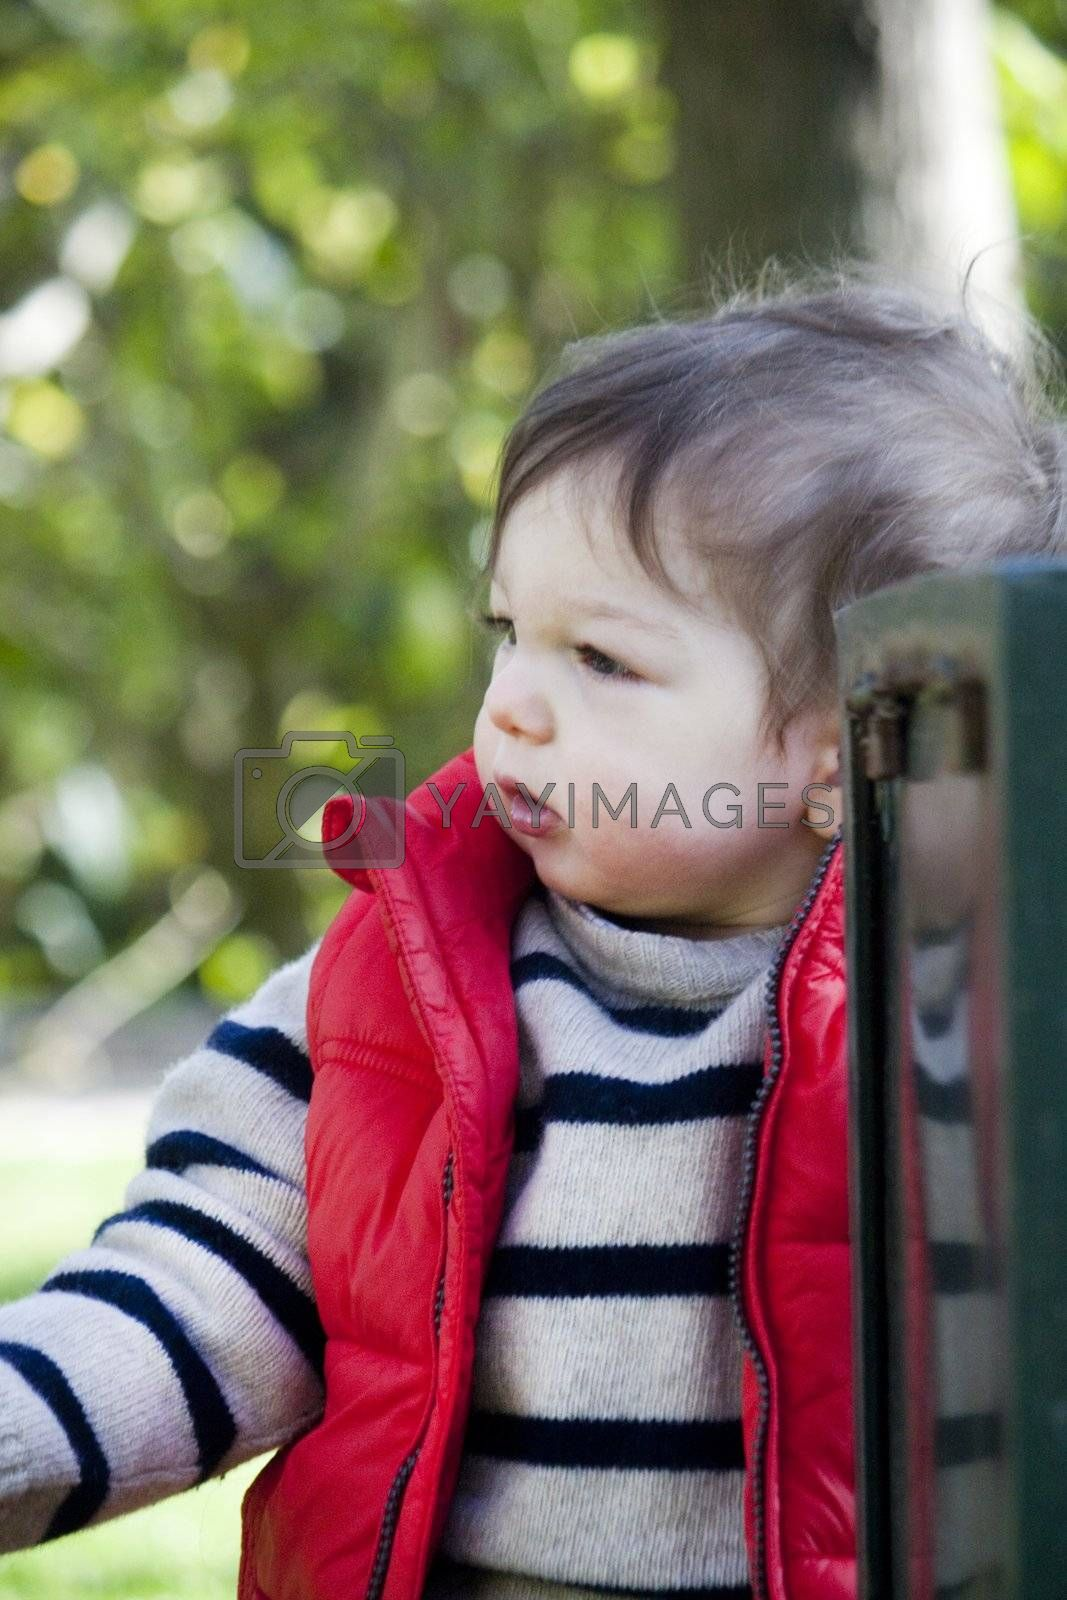 View of a young child on a urban park.